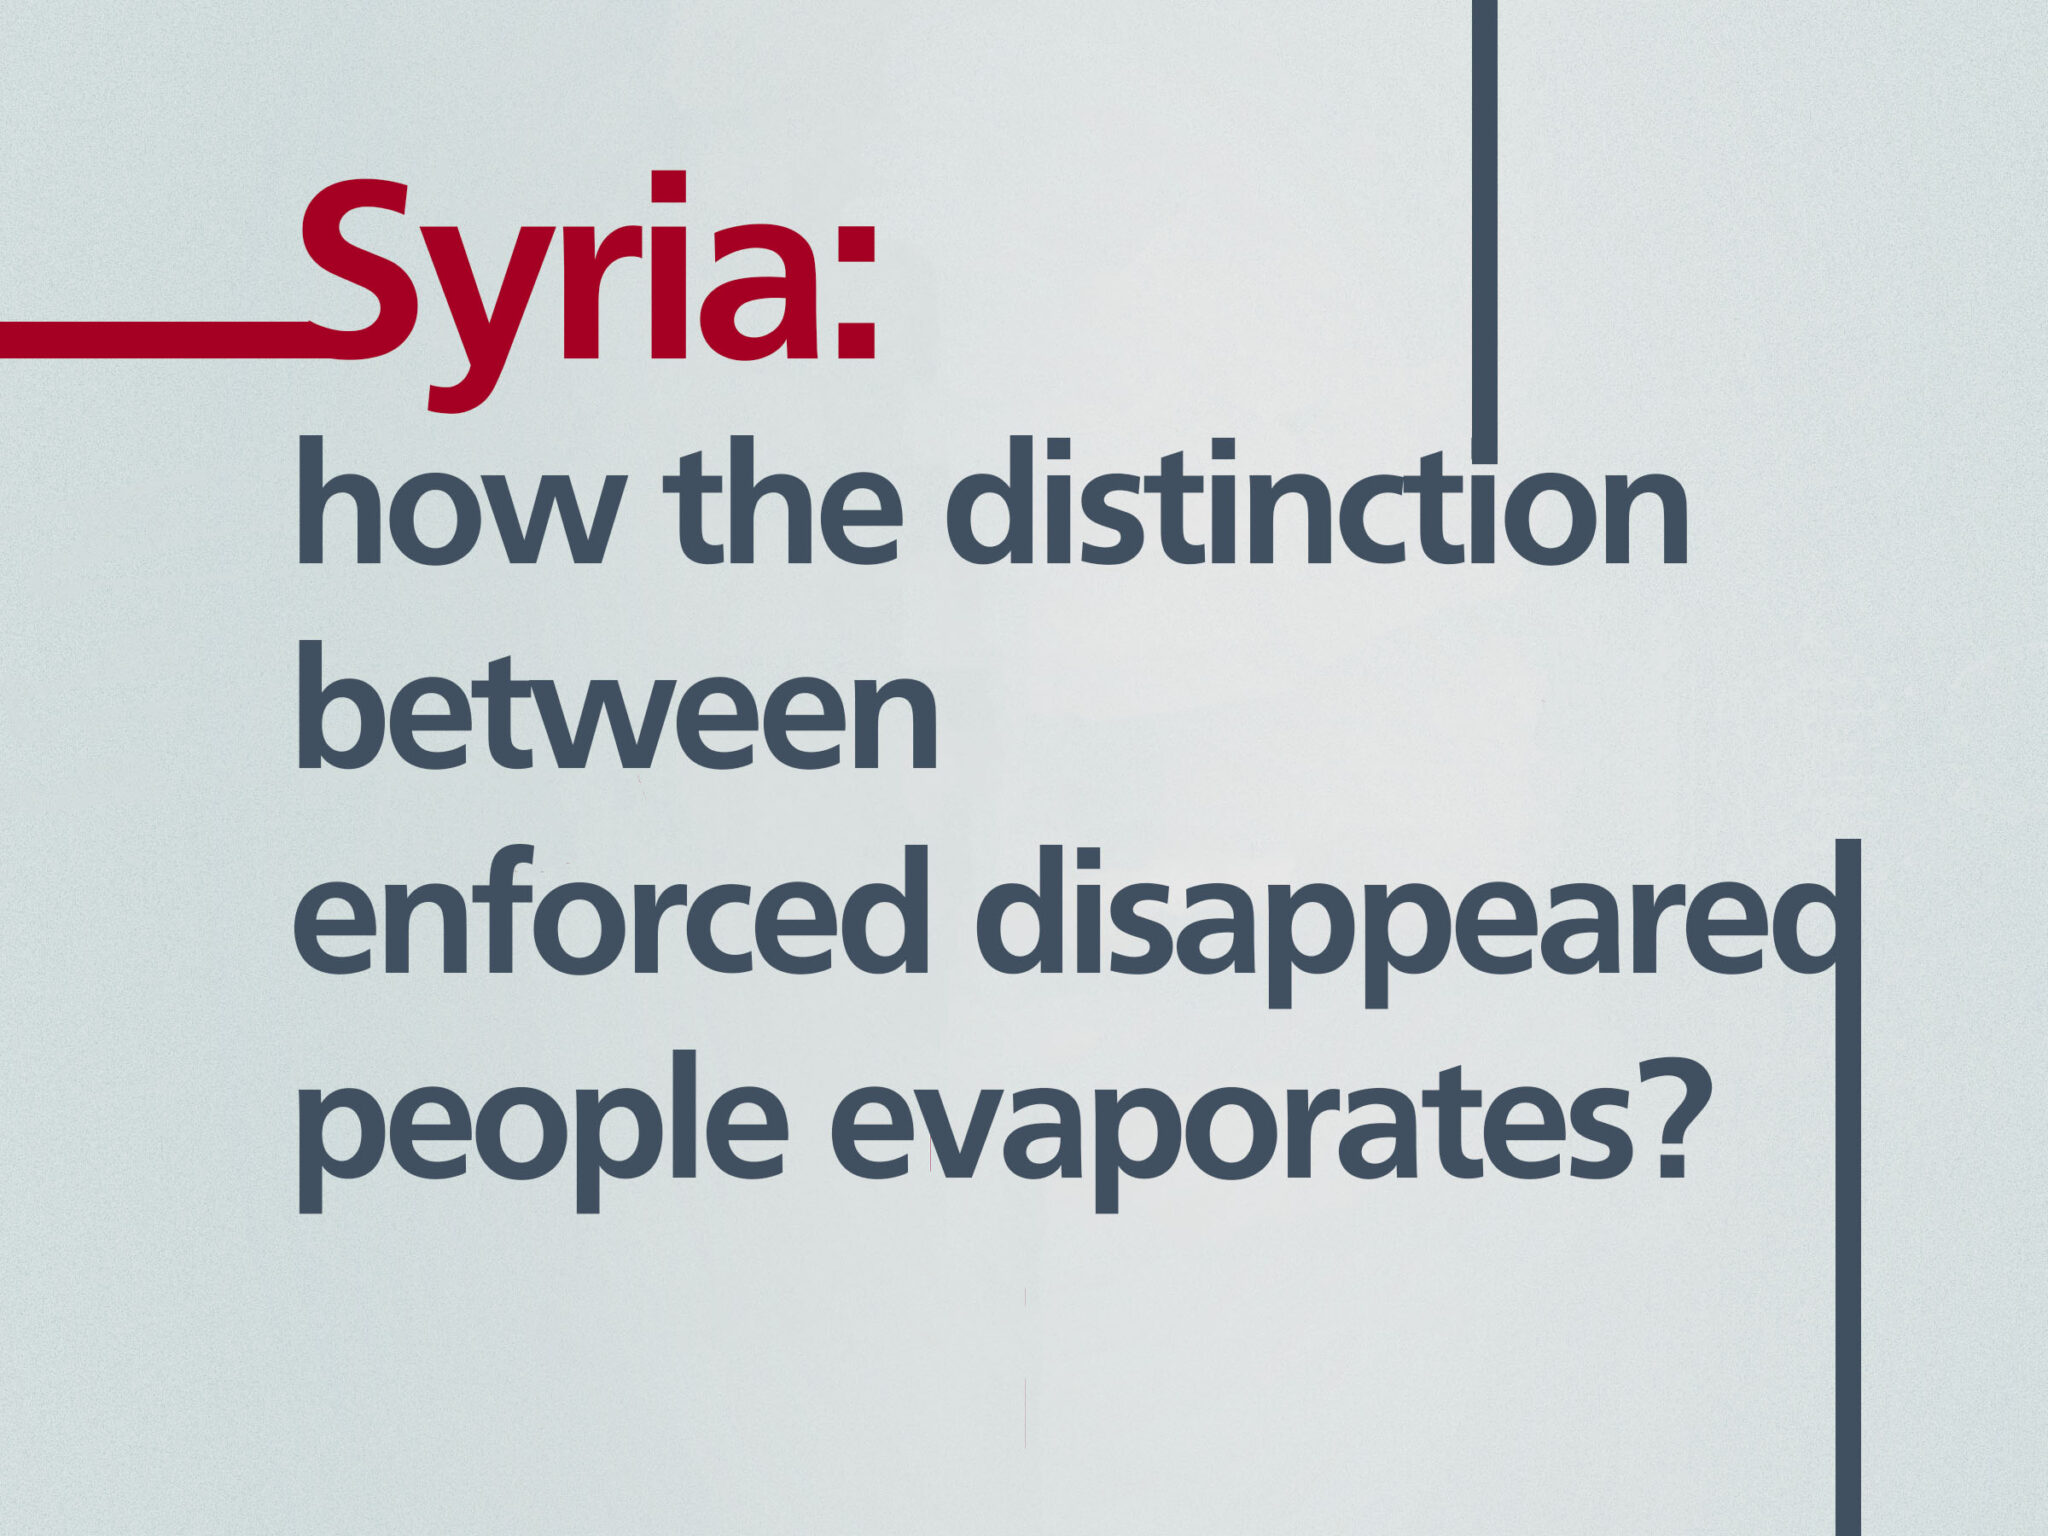 Syria || How the distinction between detainees and enforced disappeared people evaporates?